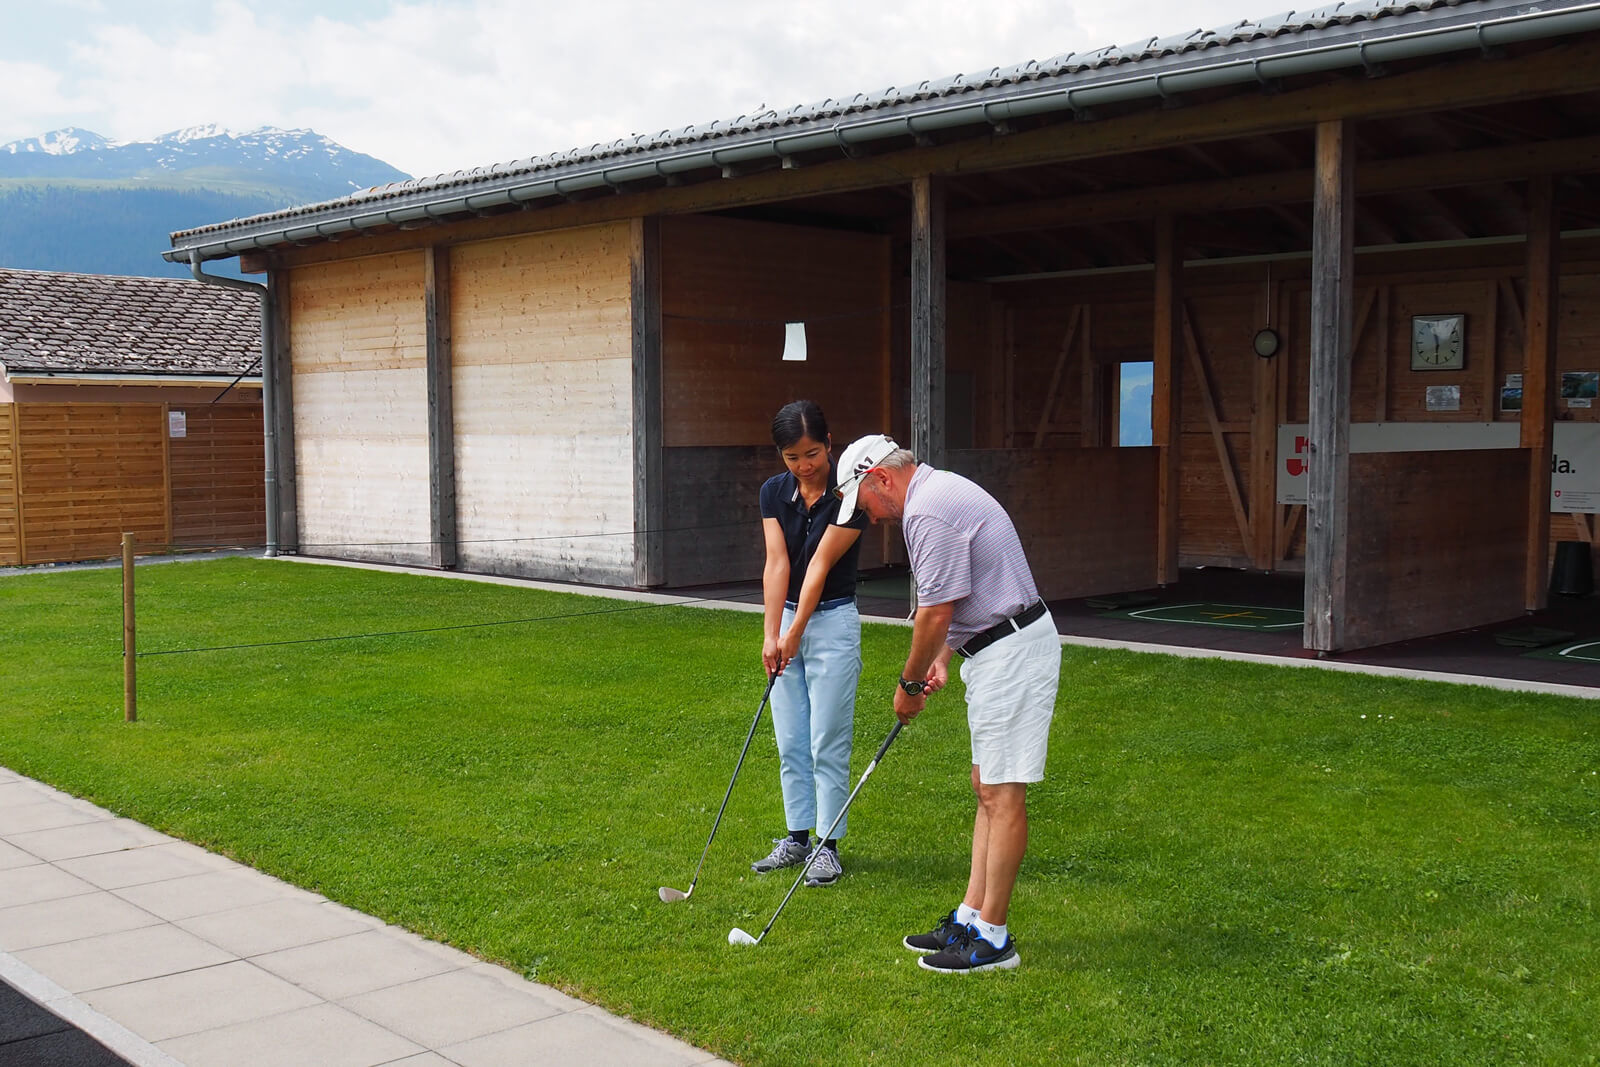 Golfing in Graubünden at Brigels Golf Course